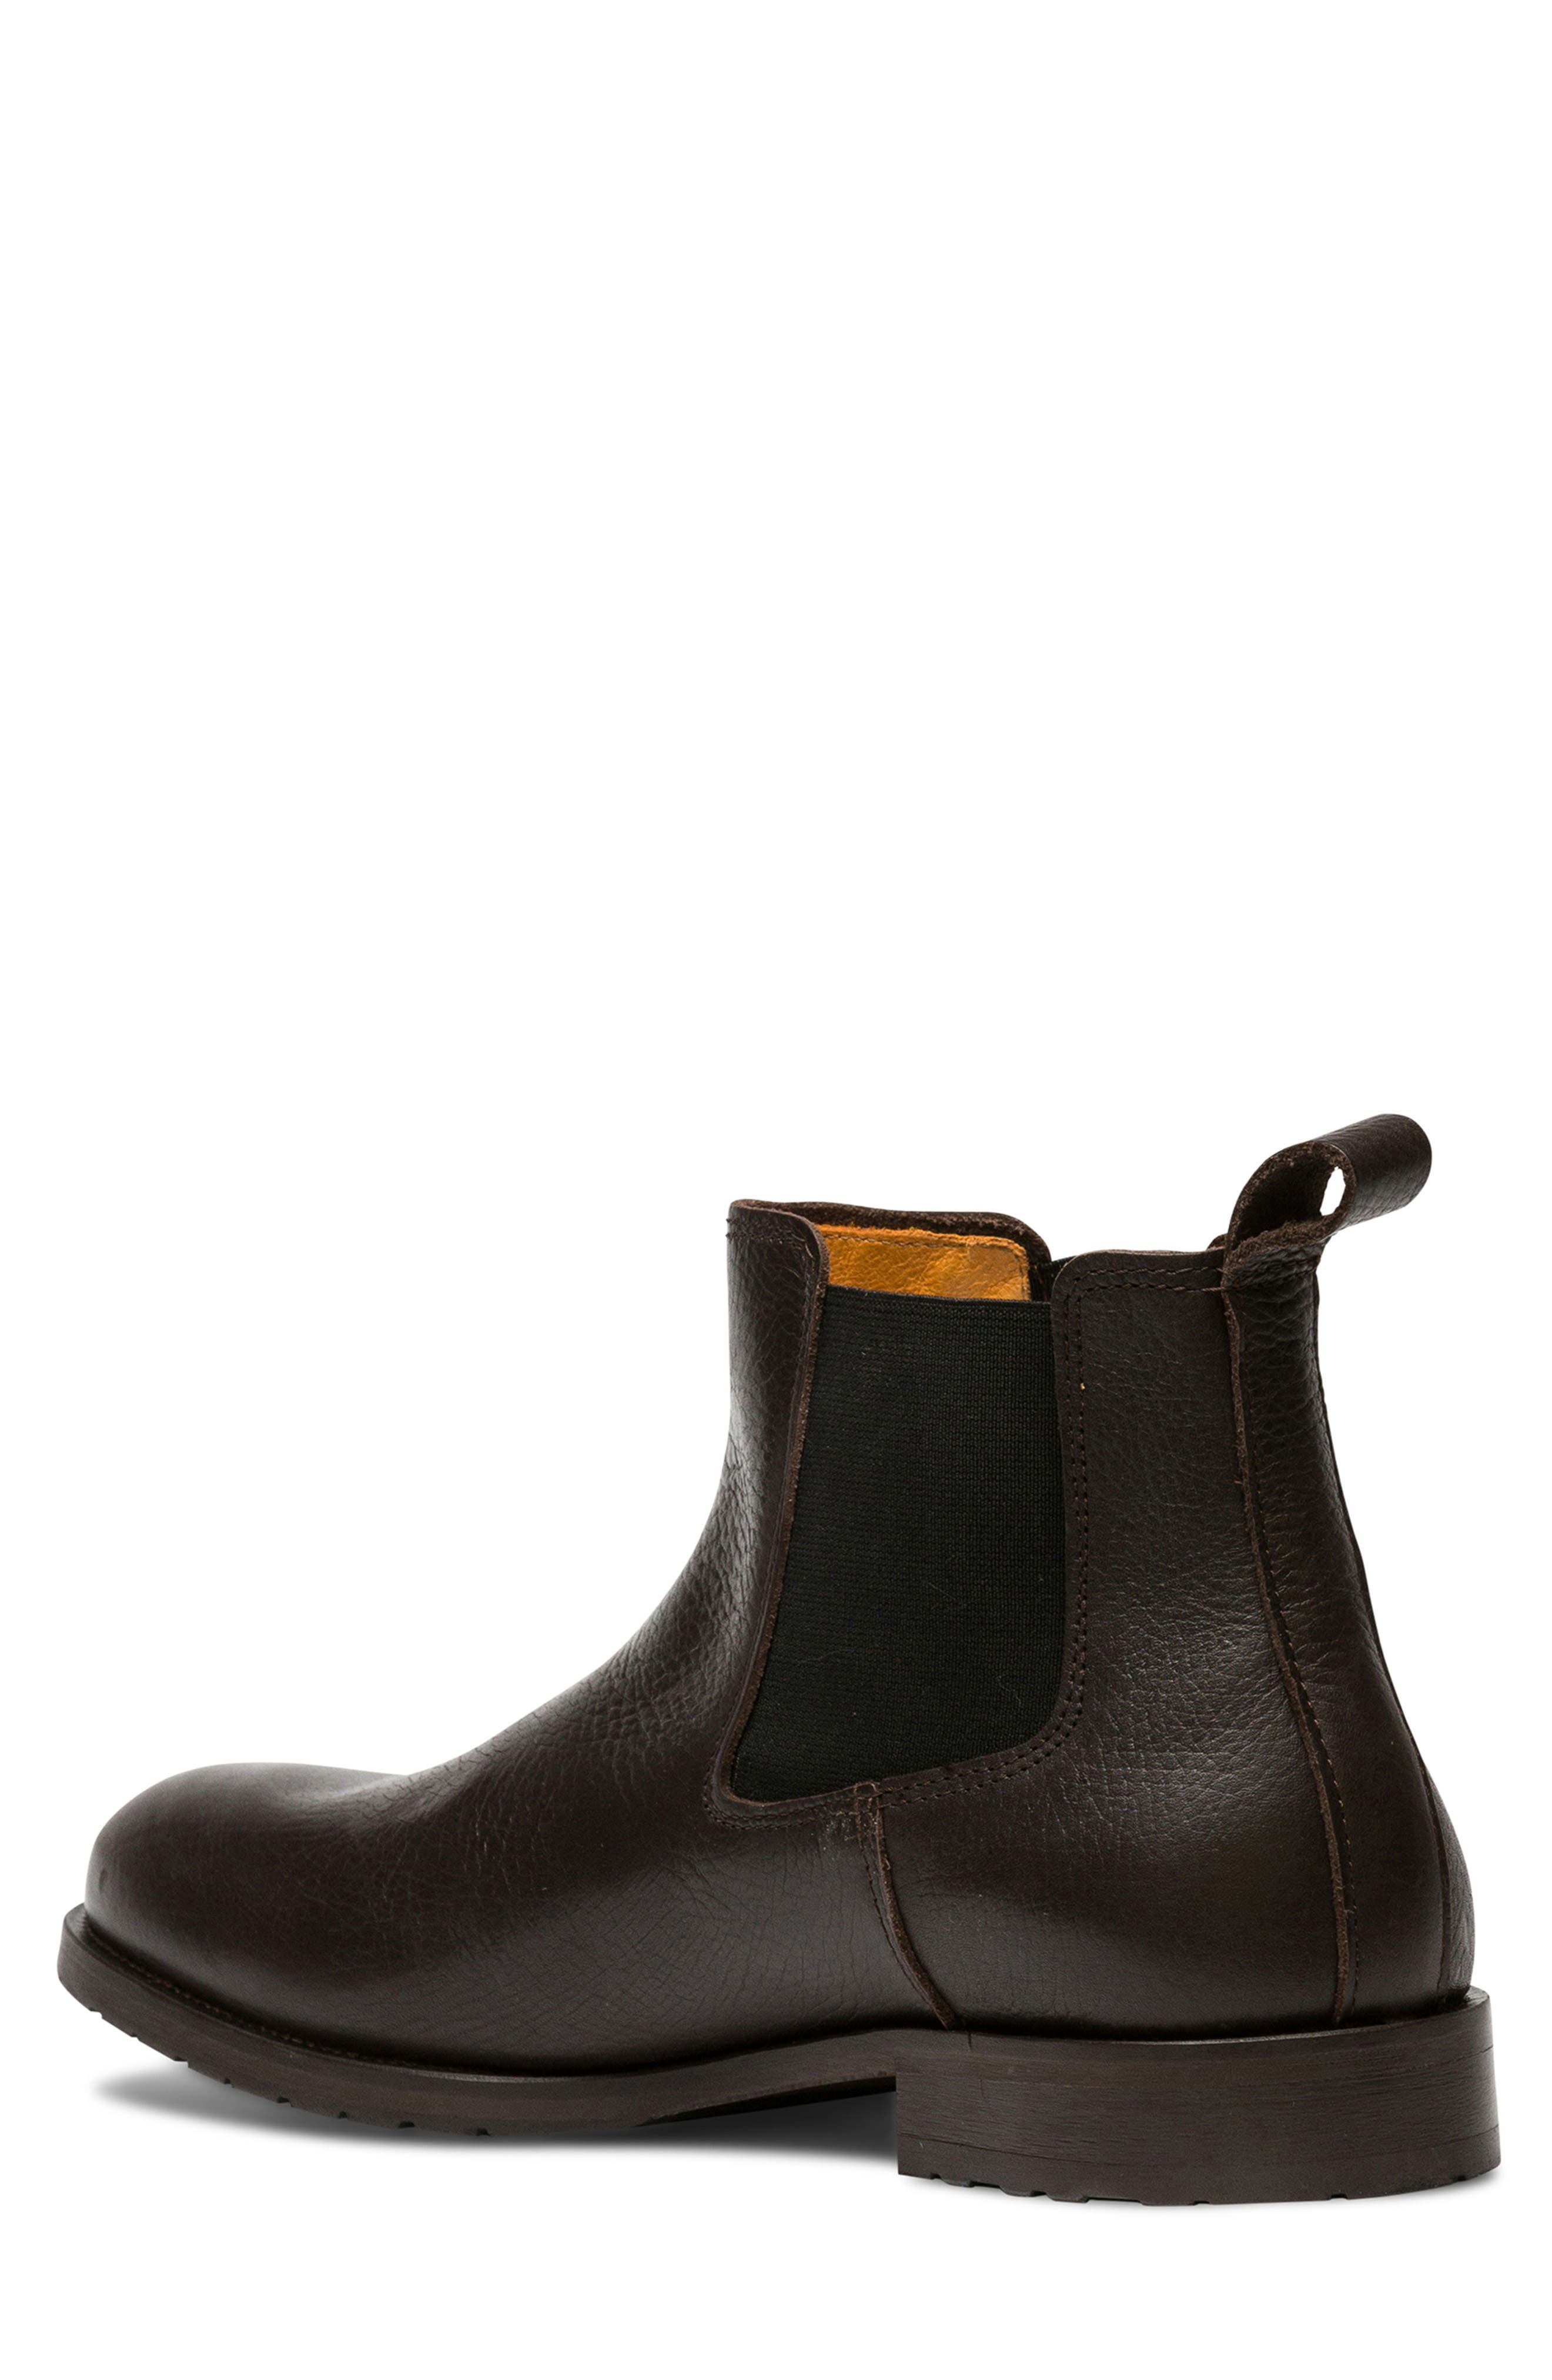 Westholme Chelsea Boot,                             Alternate thumbnail 2, color,                             CHOCOLATE LEATHER